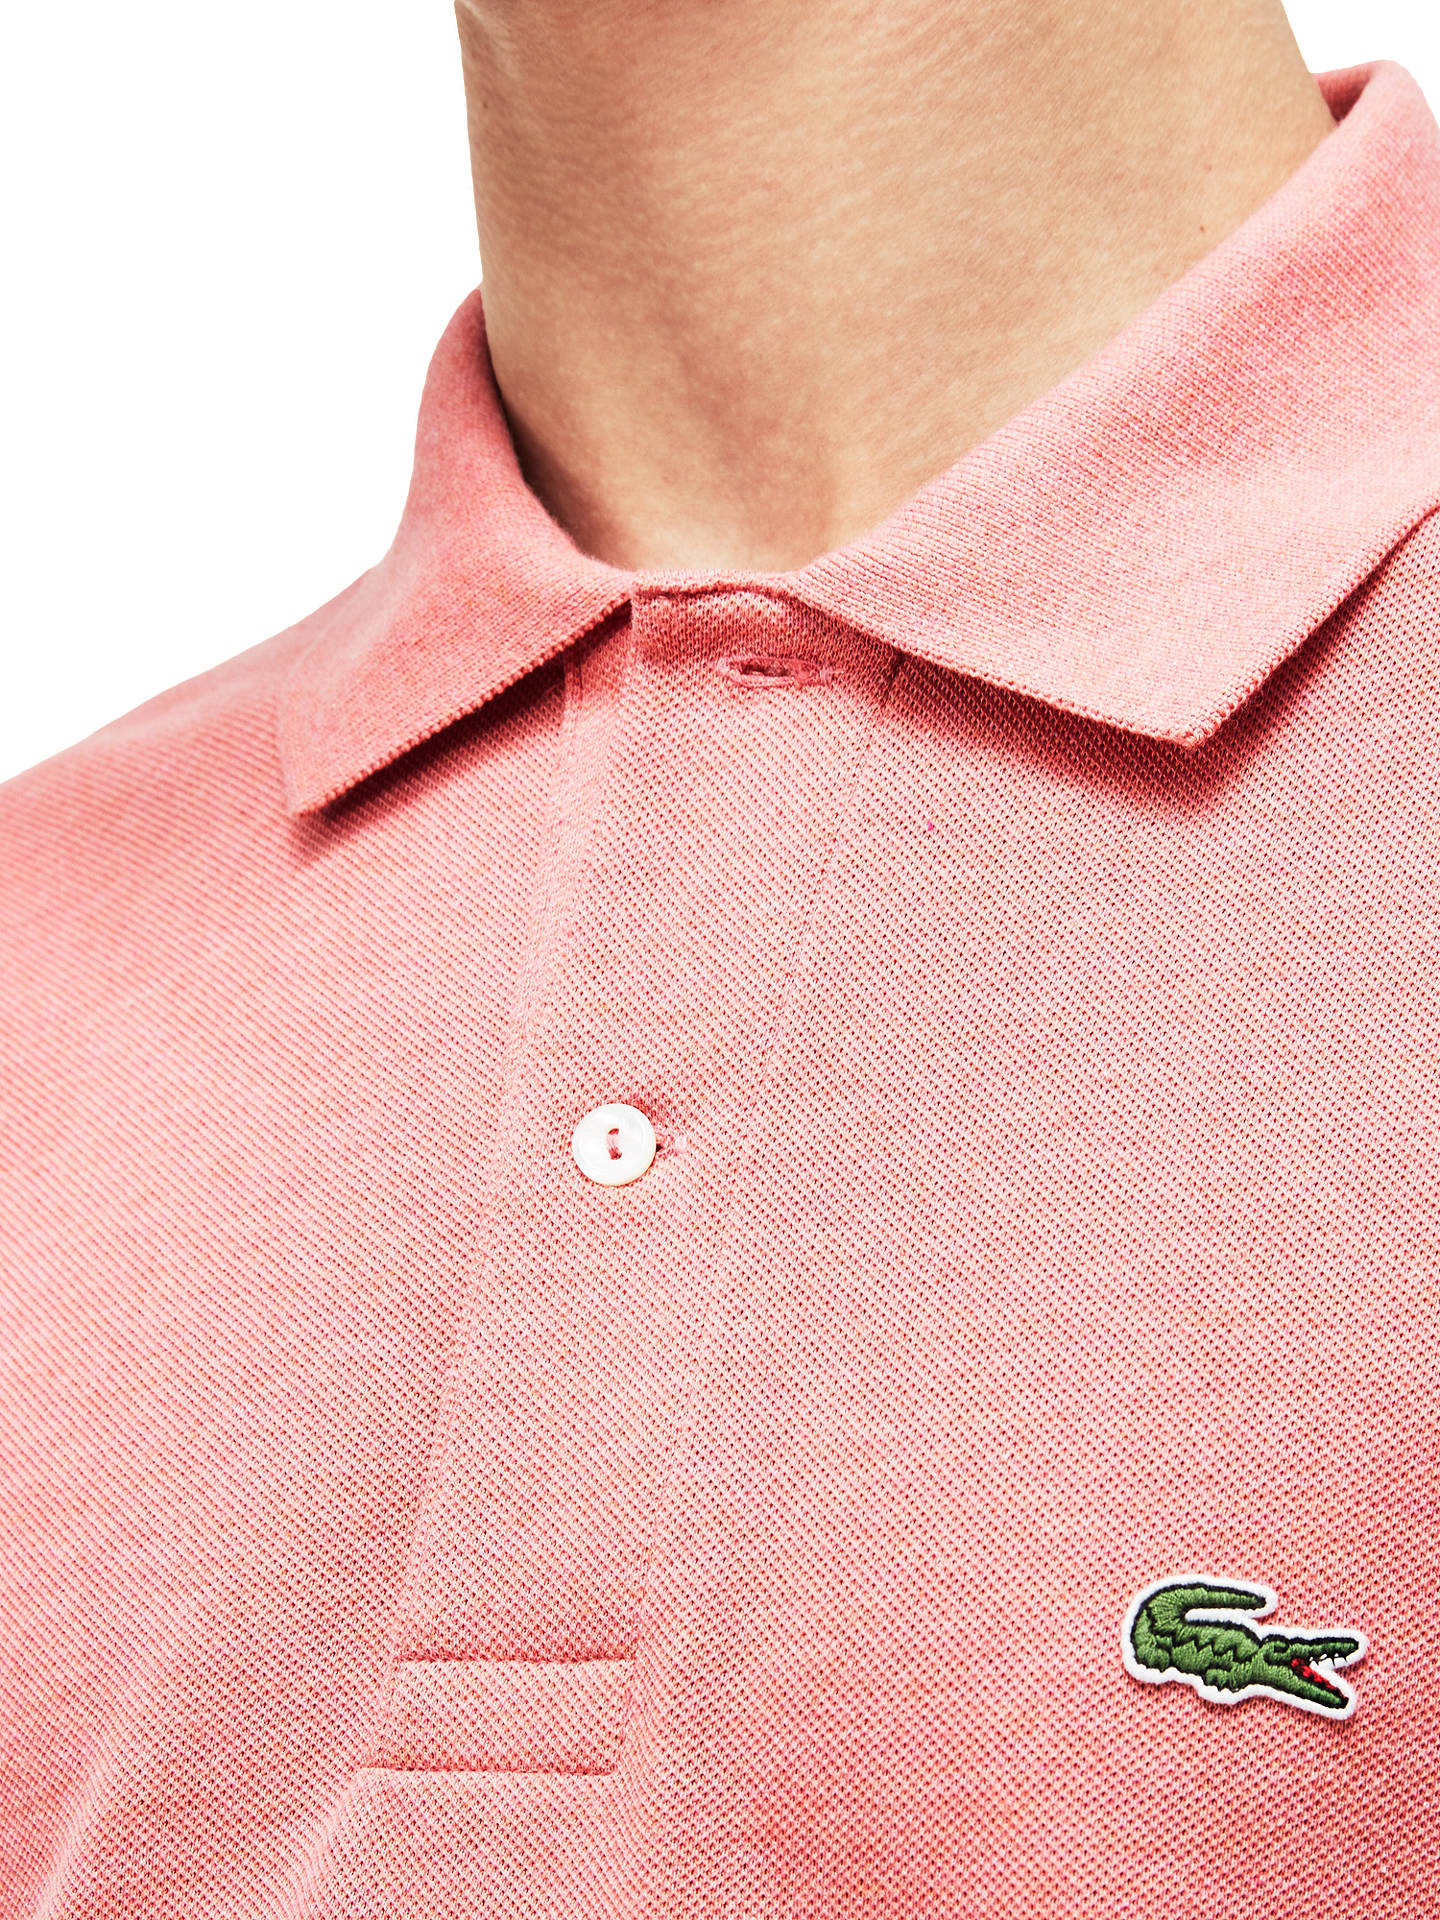 3e731759 ... Buy Lacoste L.12.12 Classic Regular Fit Marl Short Sleeve Polo Shirt,  Pink Marl